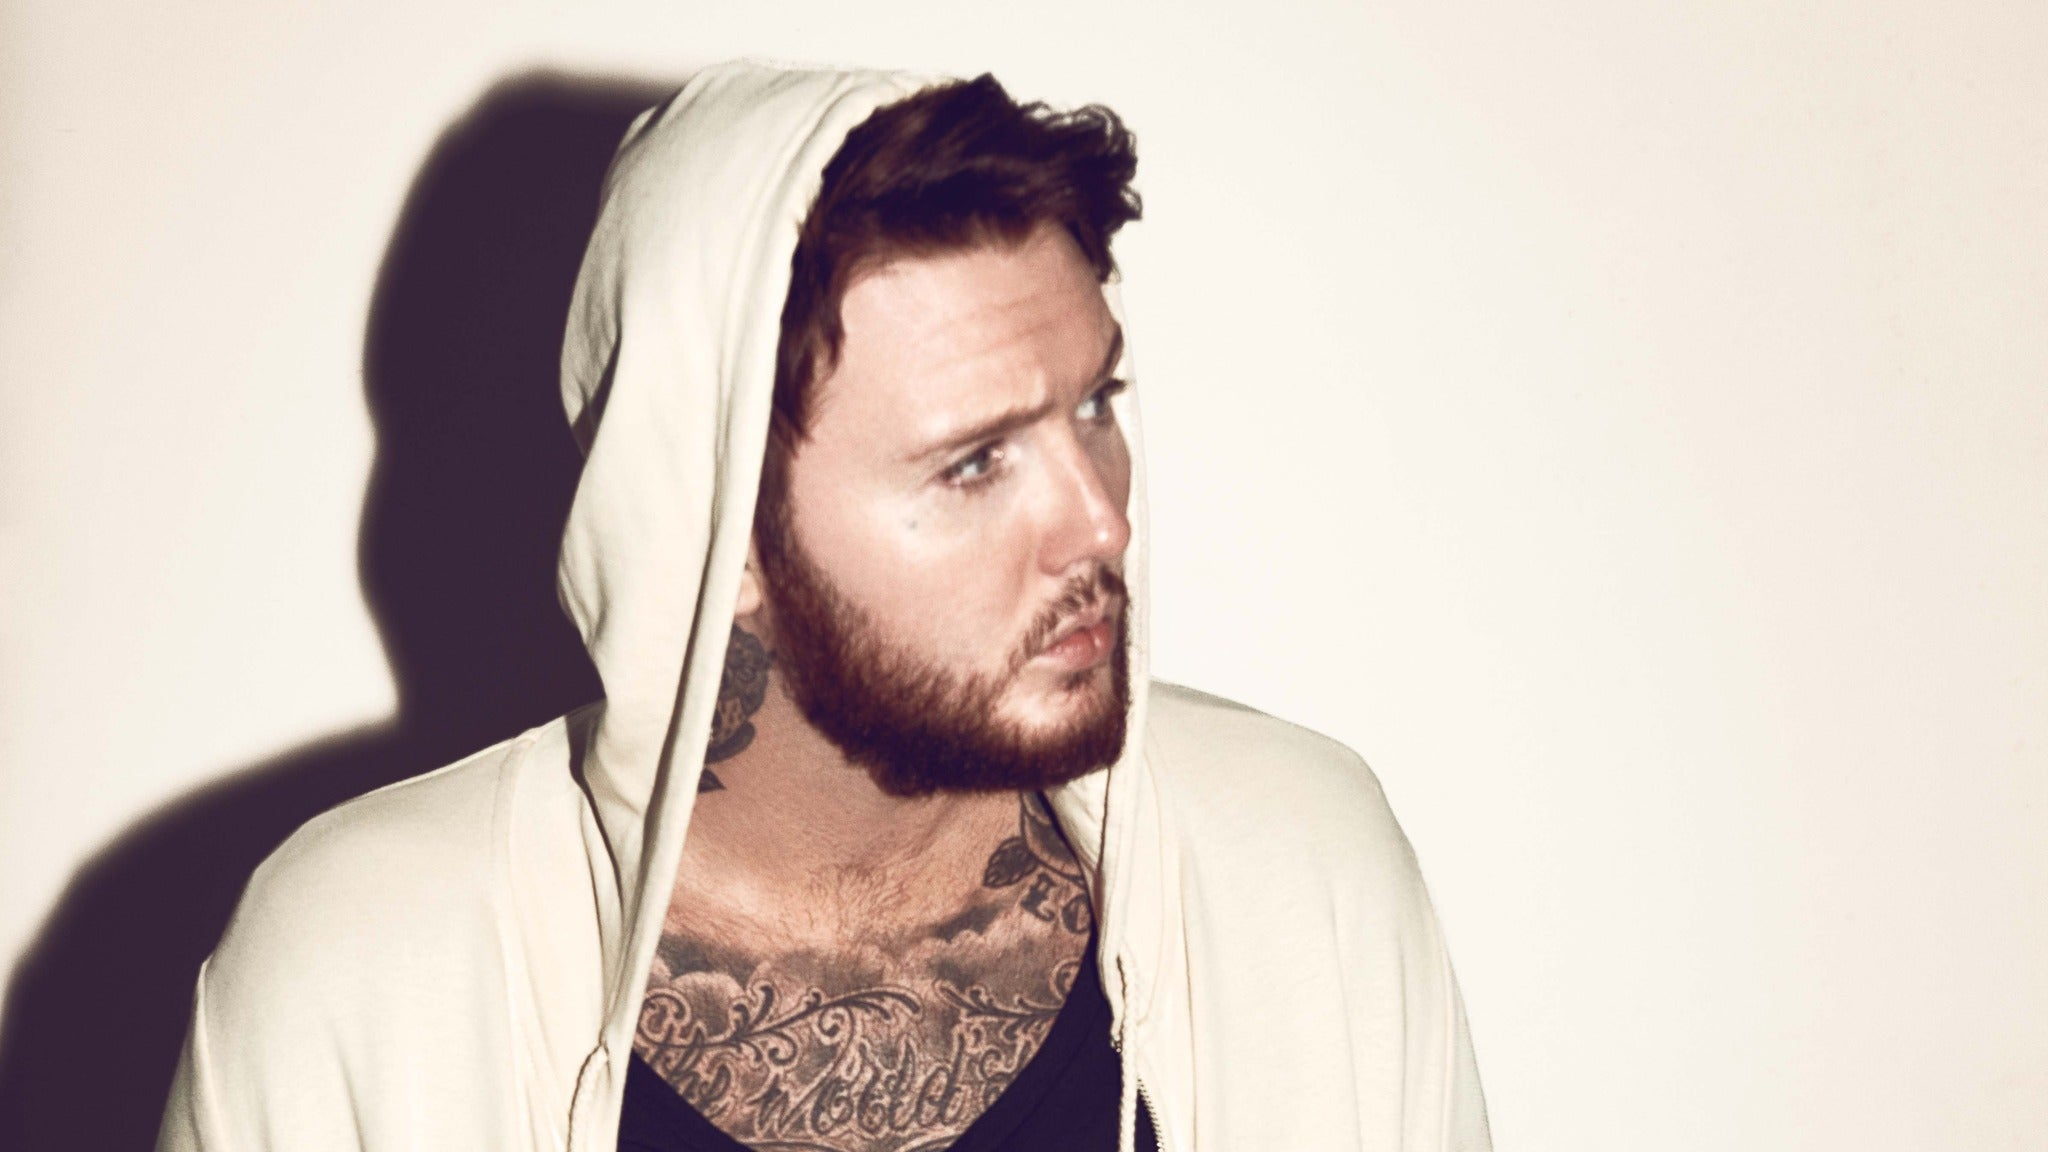 James Arthur - Meet & Greet Packages